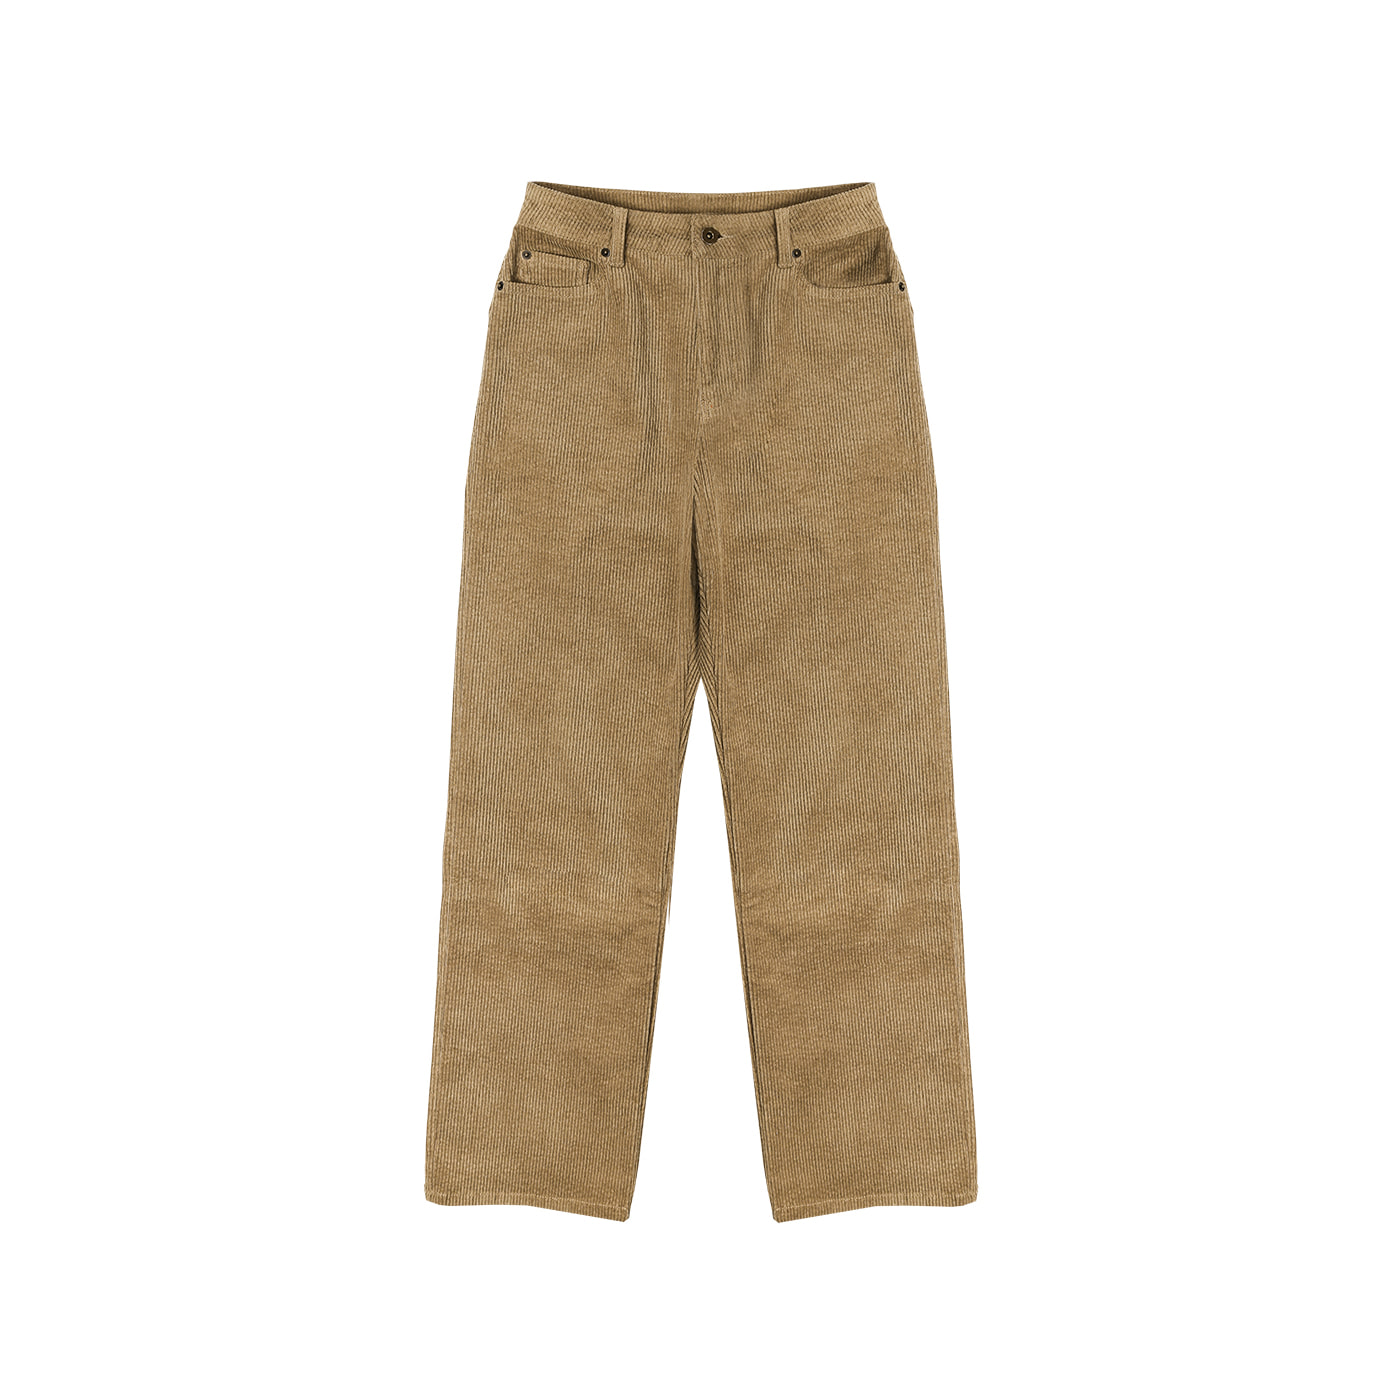 2nd) Midrise Straight fit Coduroy Mocha